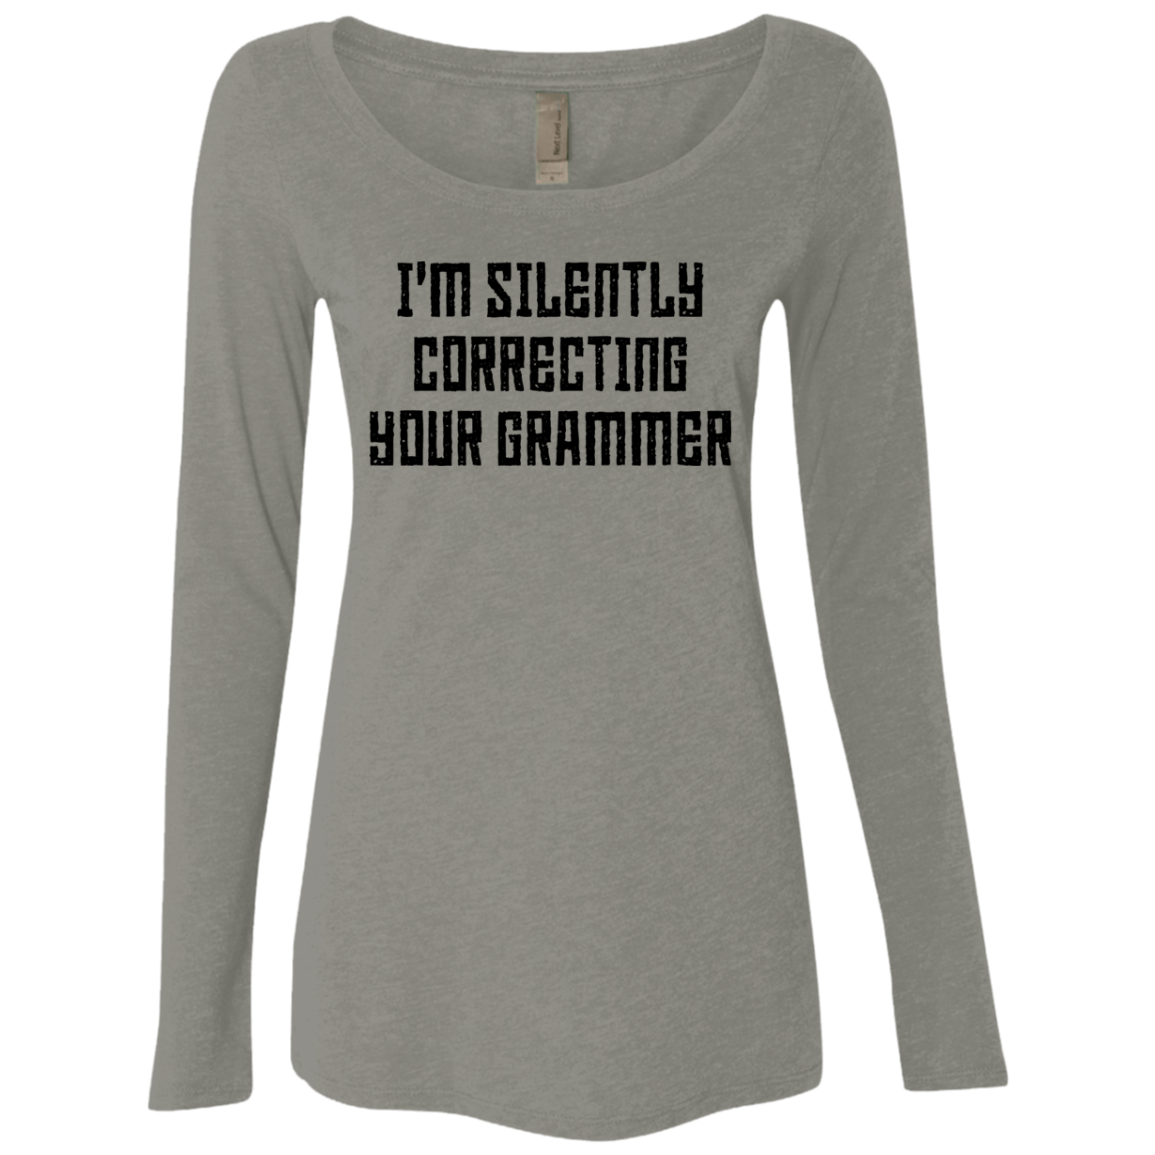 I'm Silently Correcting Your Grammer Women's Long Sleeve Tee